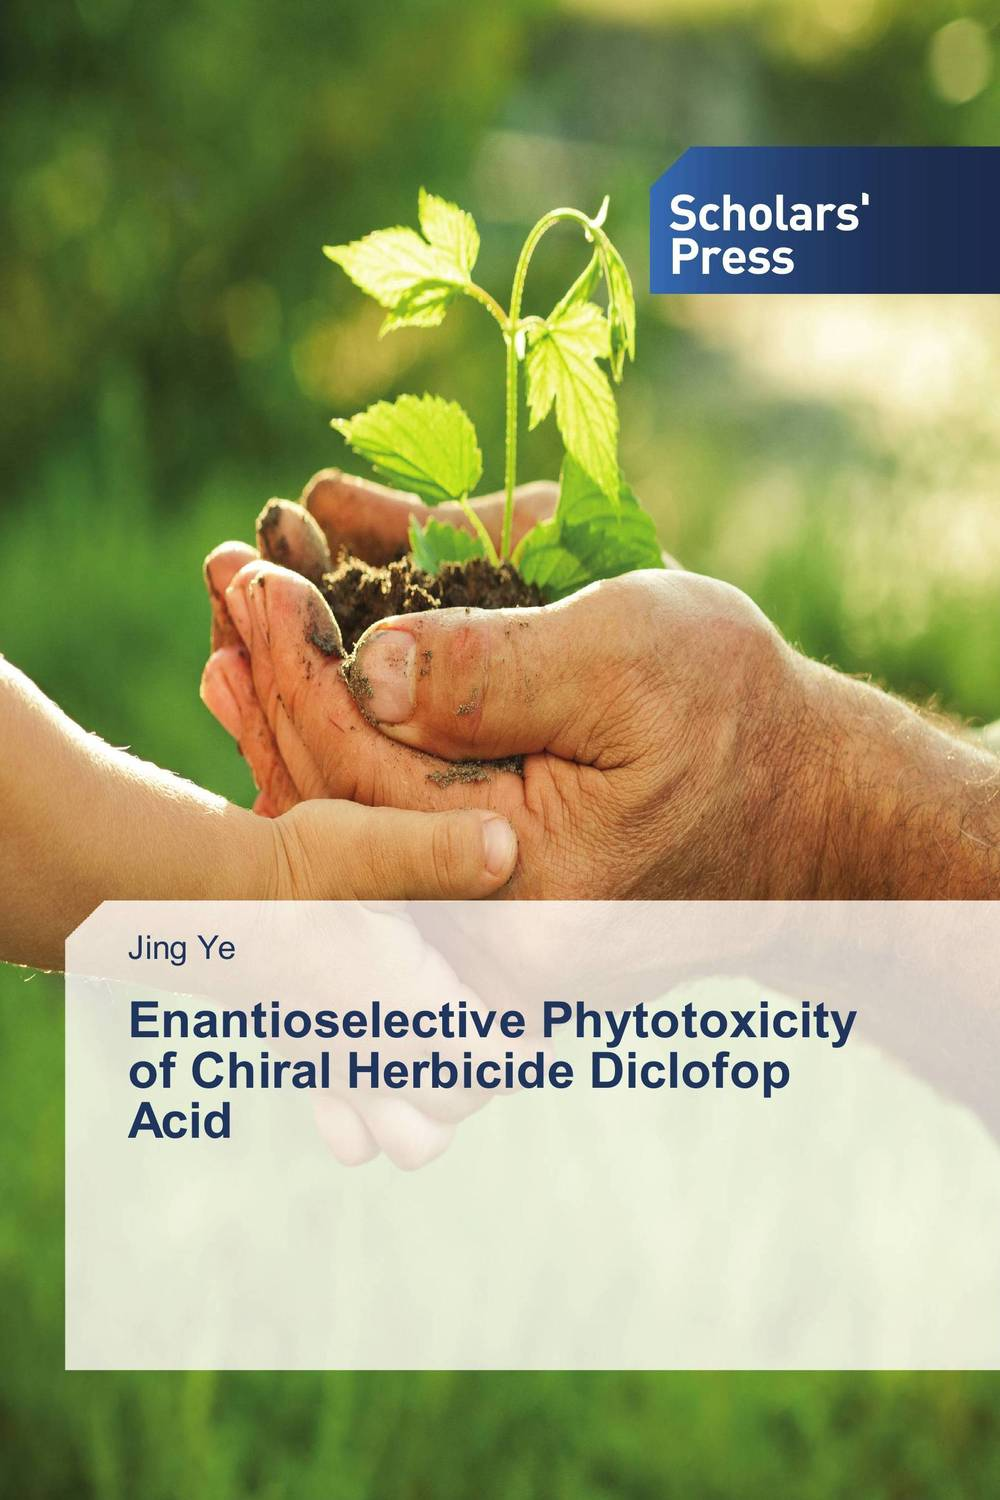 Enantioselective Phytotoxicity of Chiral Herbicide Diclofop Acid environmental effects on photosynthesis of c3 plants